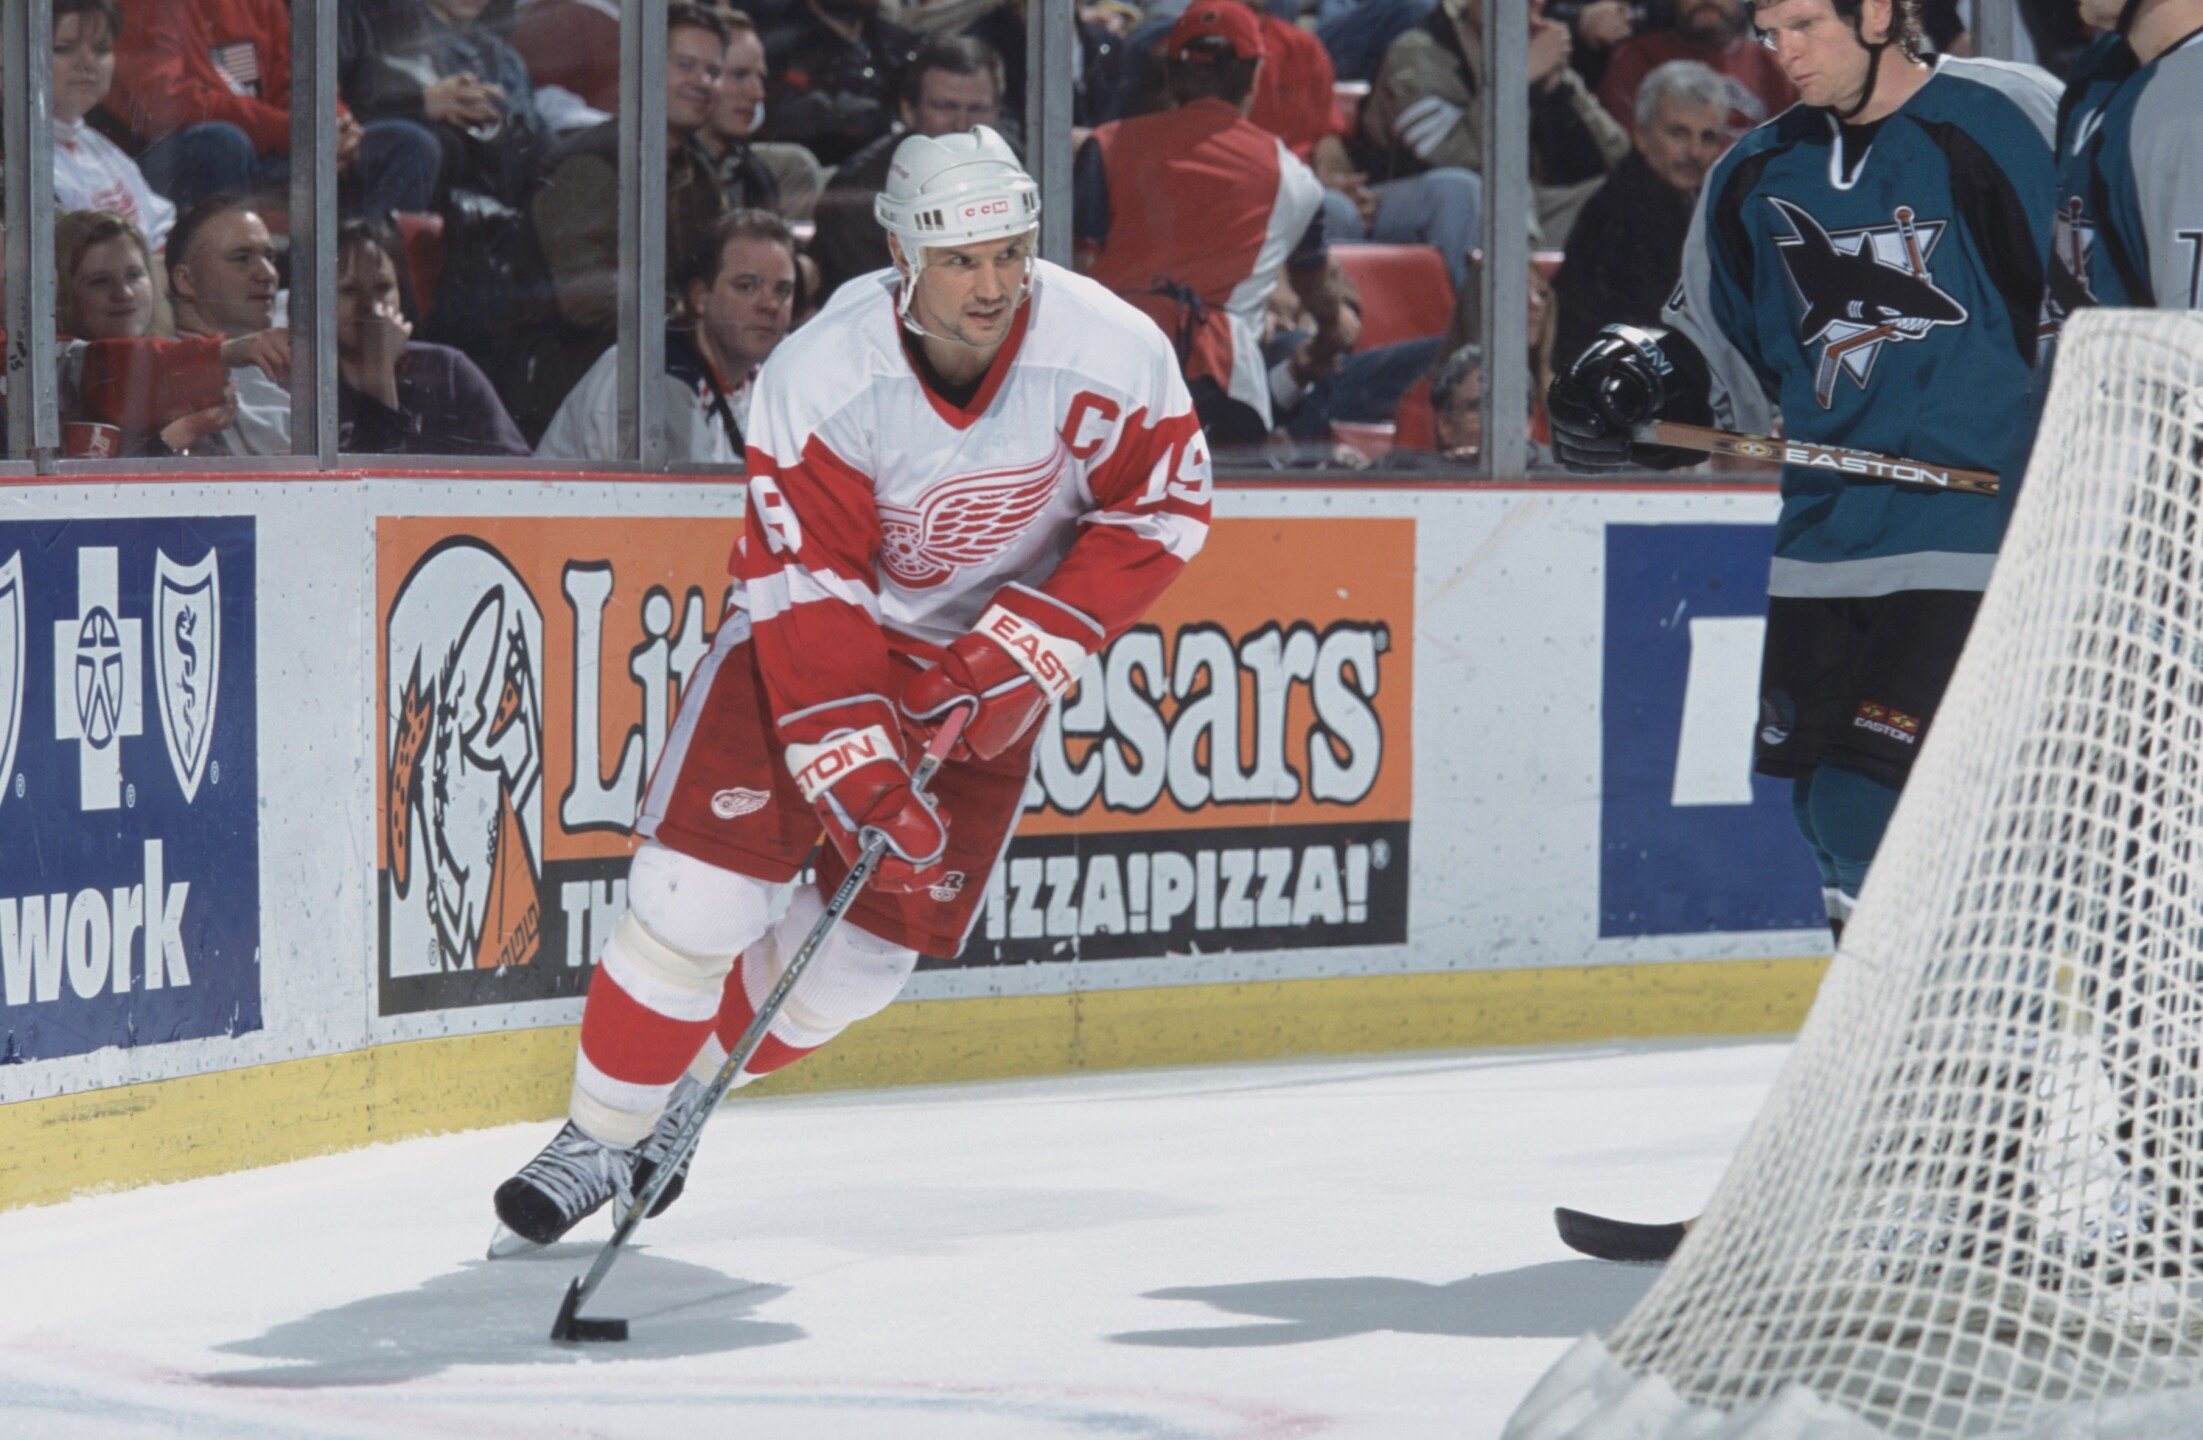 Steve Yzerman controls the puck behind the net